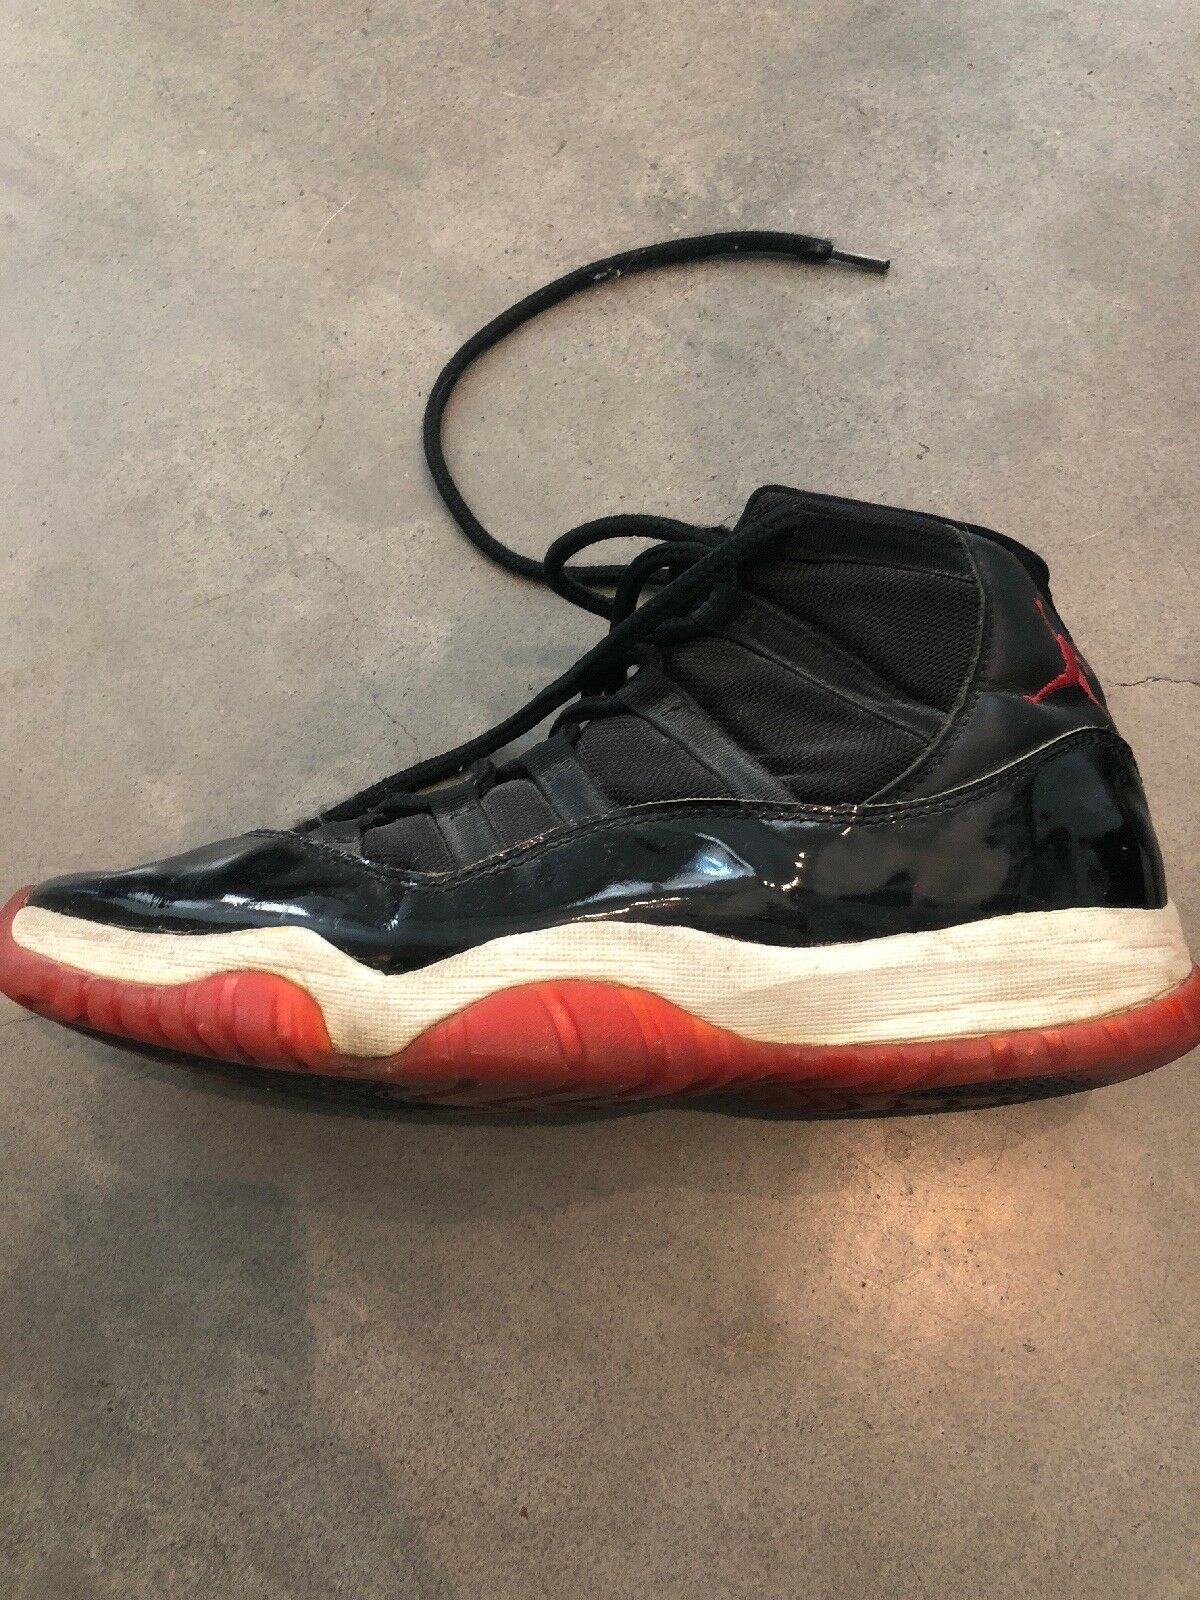 Original Jordan 11 (XI) Black   Red from 1995